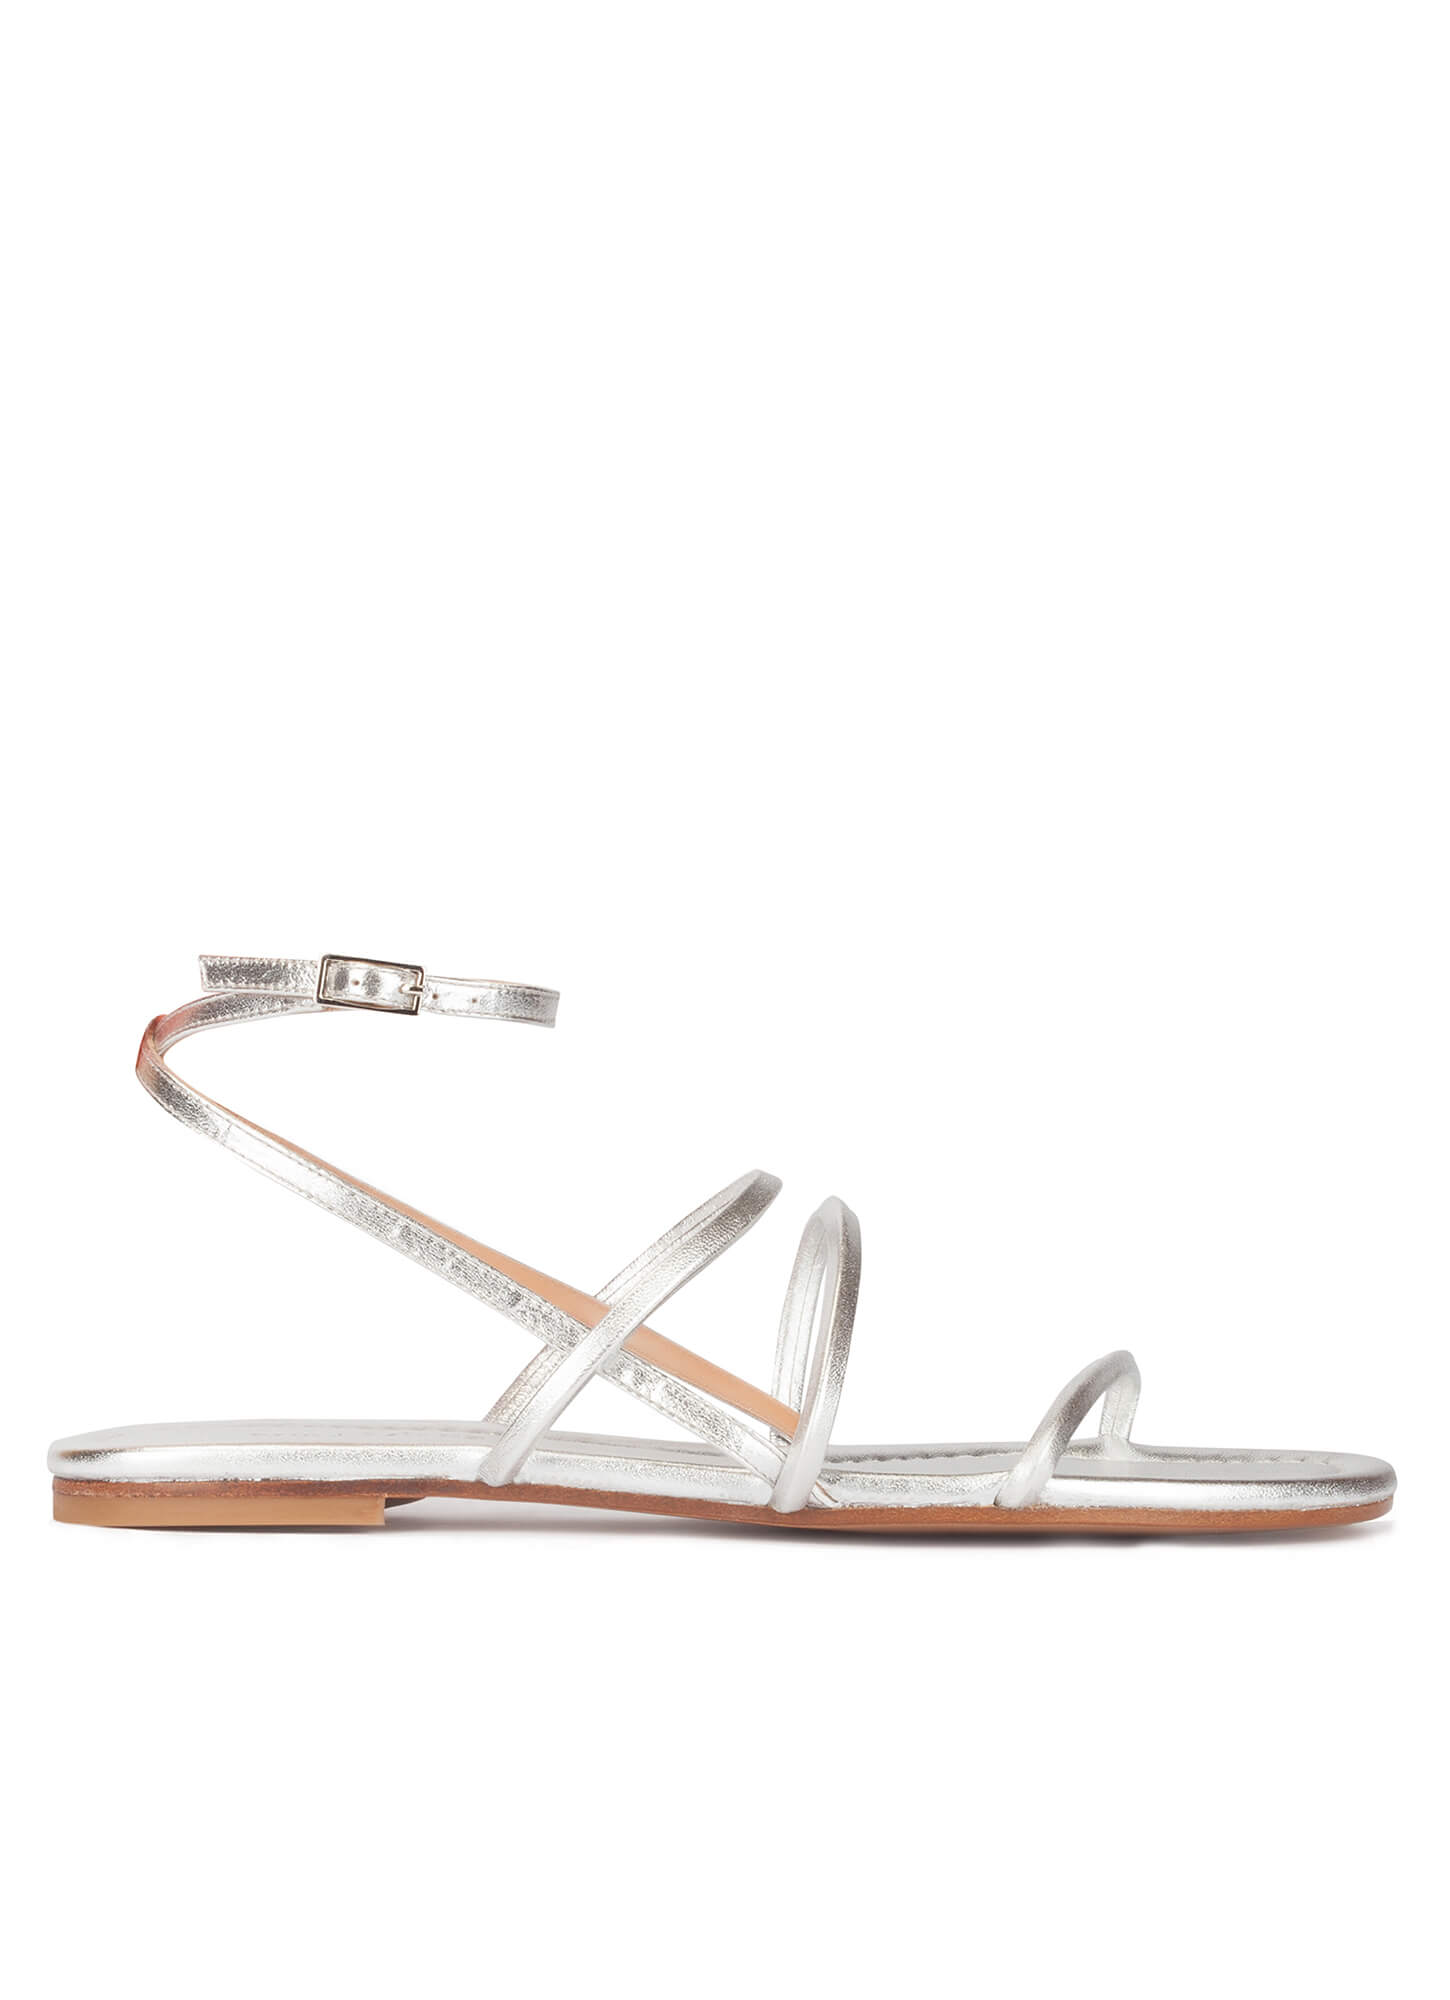 Flat LeatherPura Silver Lopez In Strappy Sandals hQtxsrdC